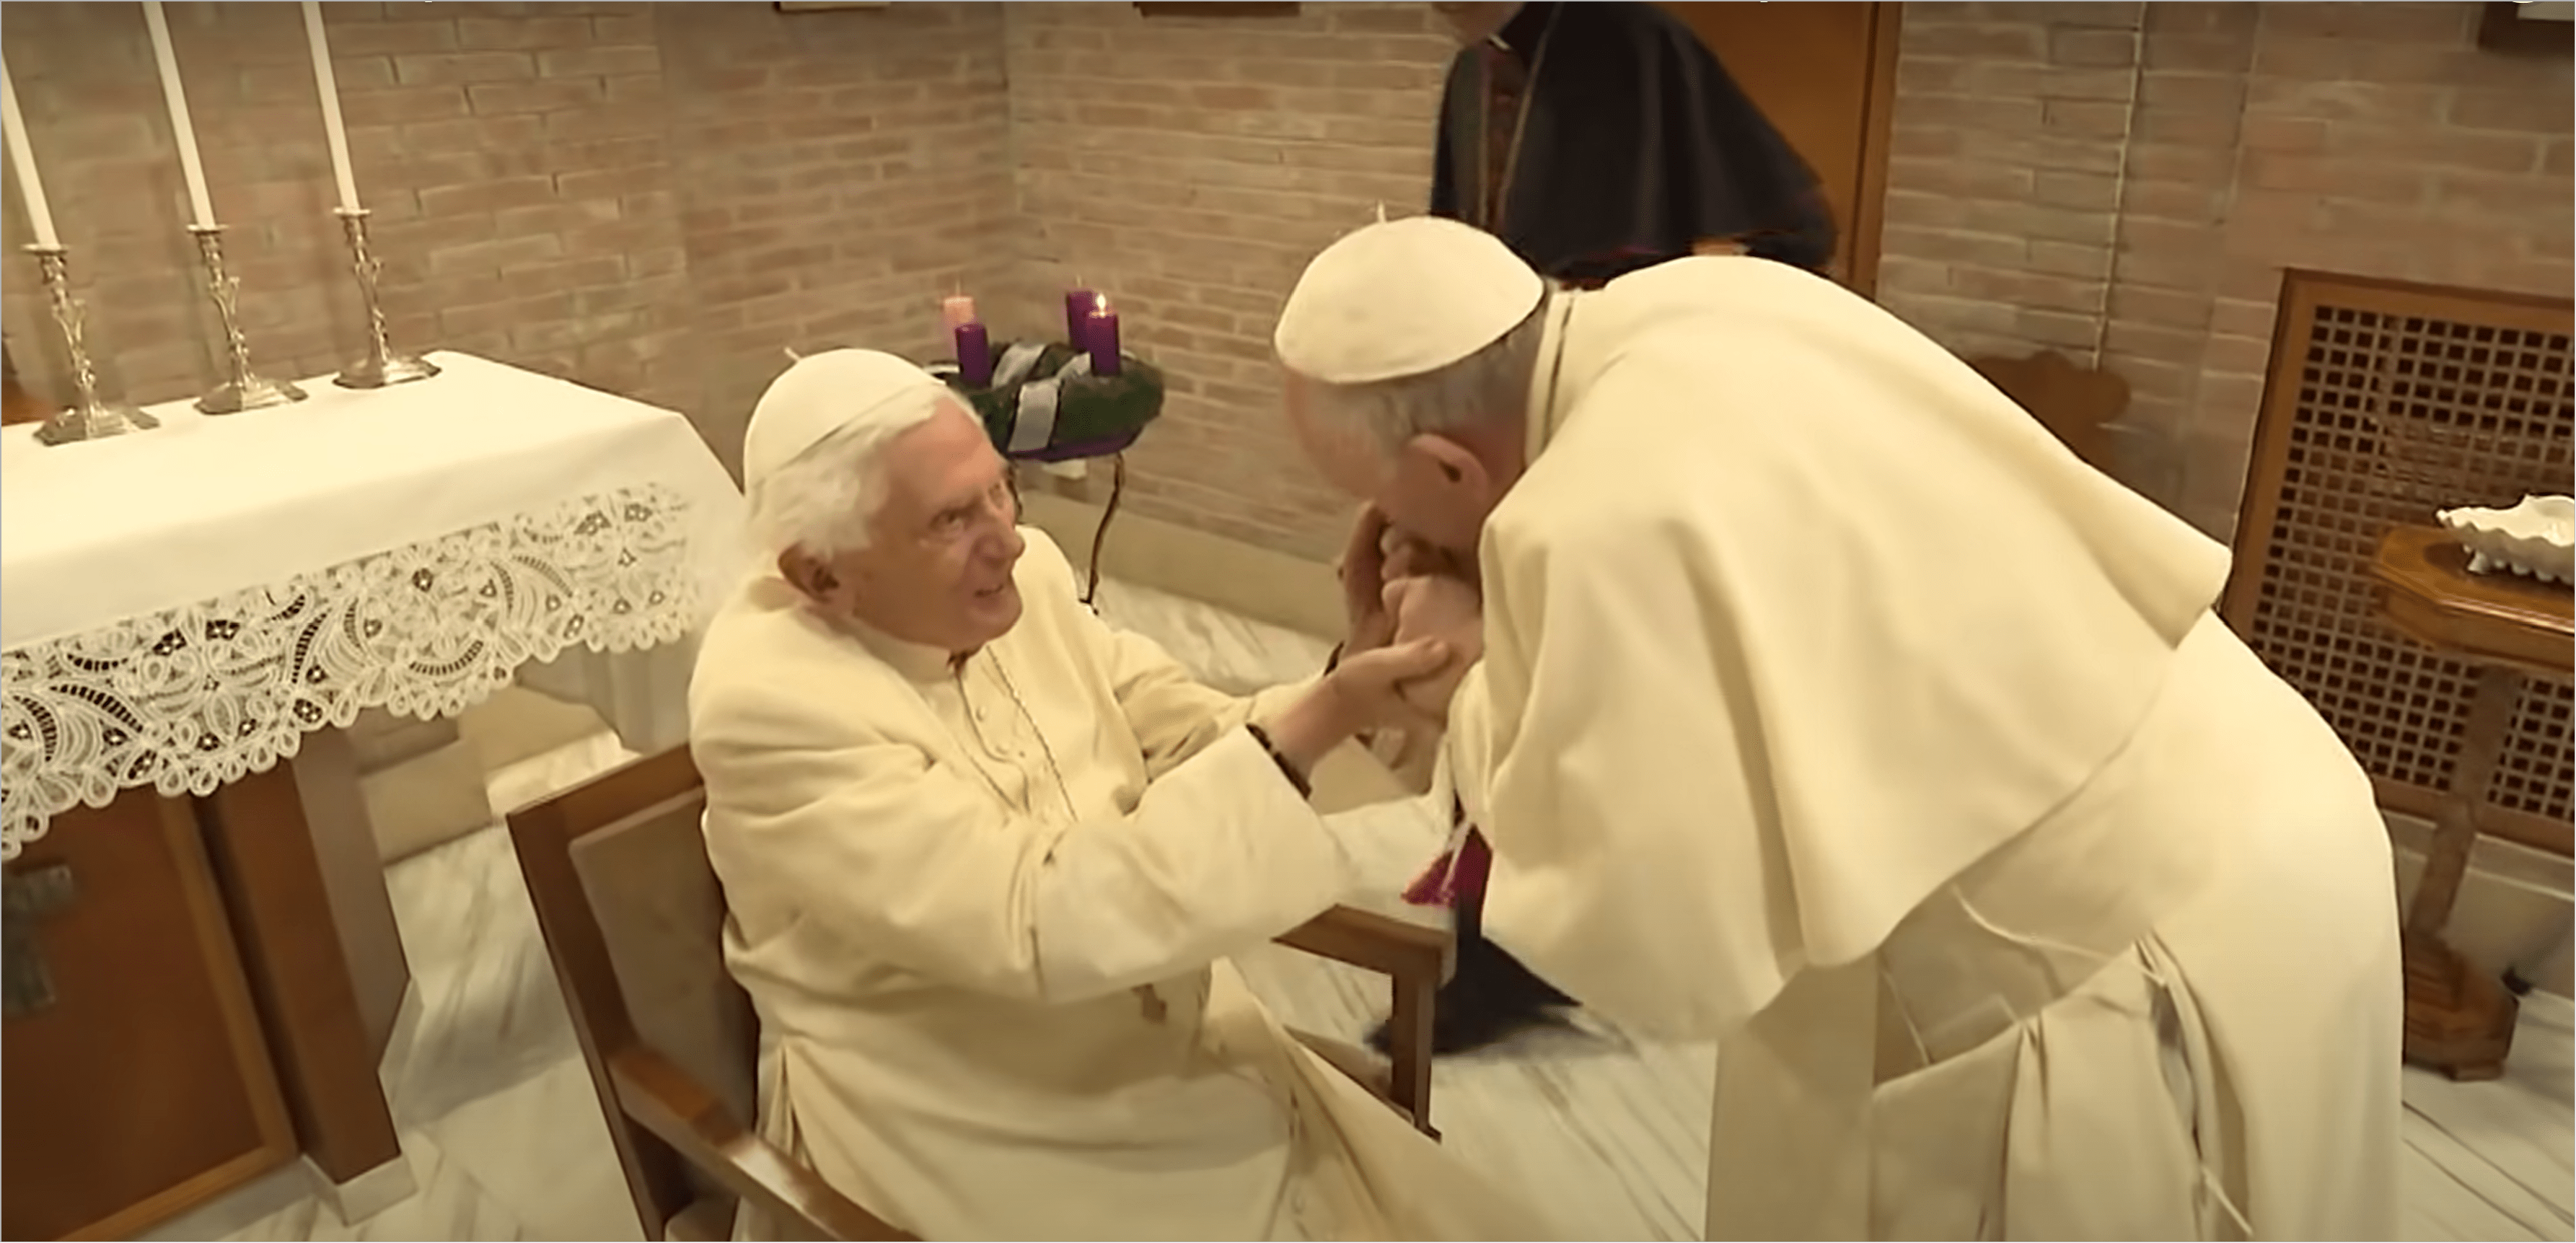 Benedict's trust in the Church and his loyalty to Francis